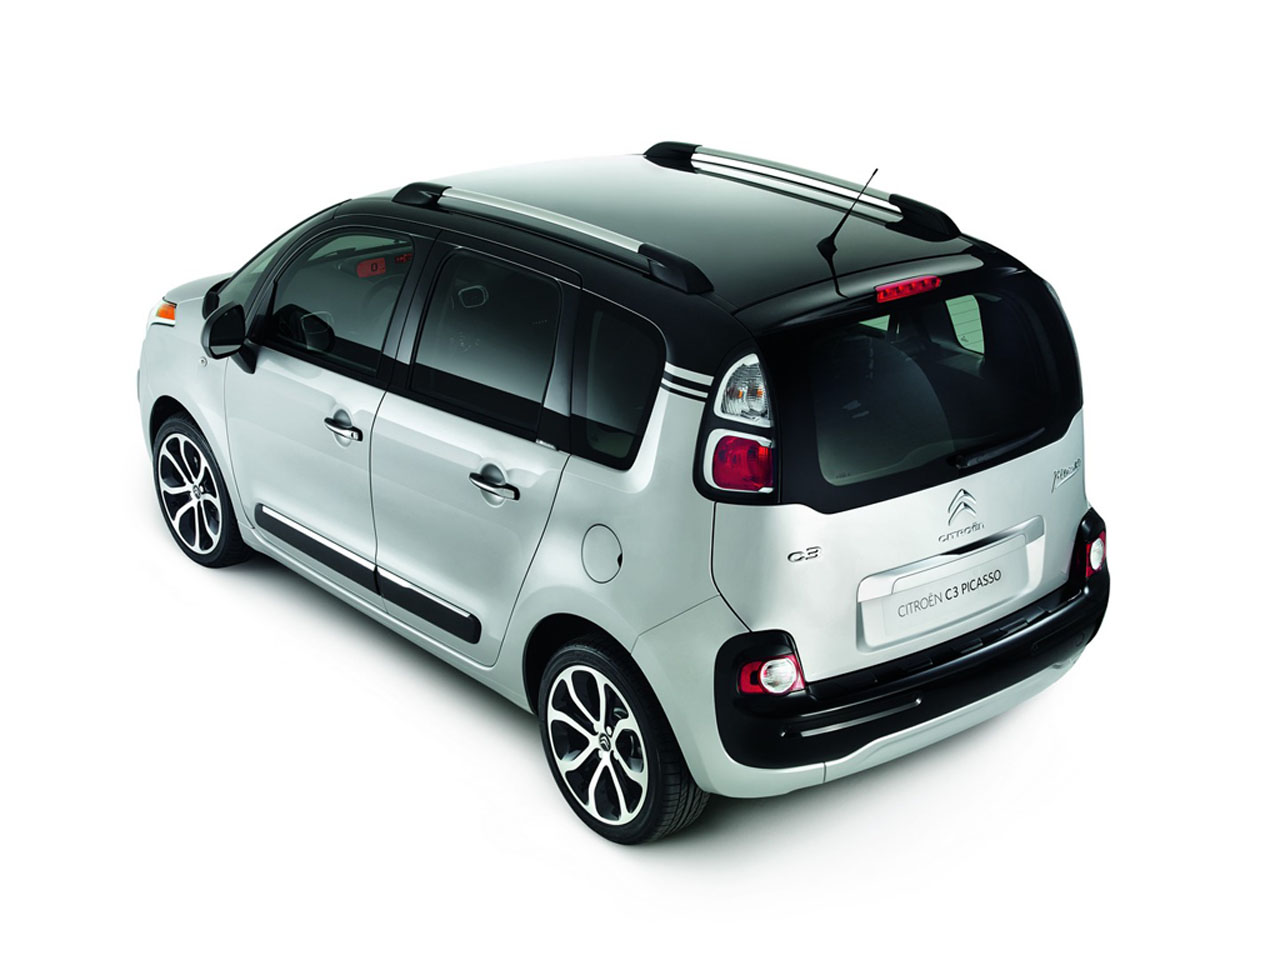 citroen c3 picasso exclusive cinema il grande schermo in auto italiantestdriver. Black Bedroom Furniture Sets. Home Design Ideas